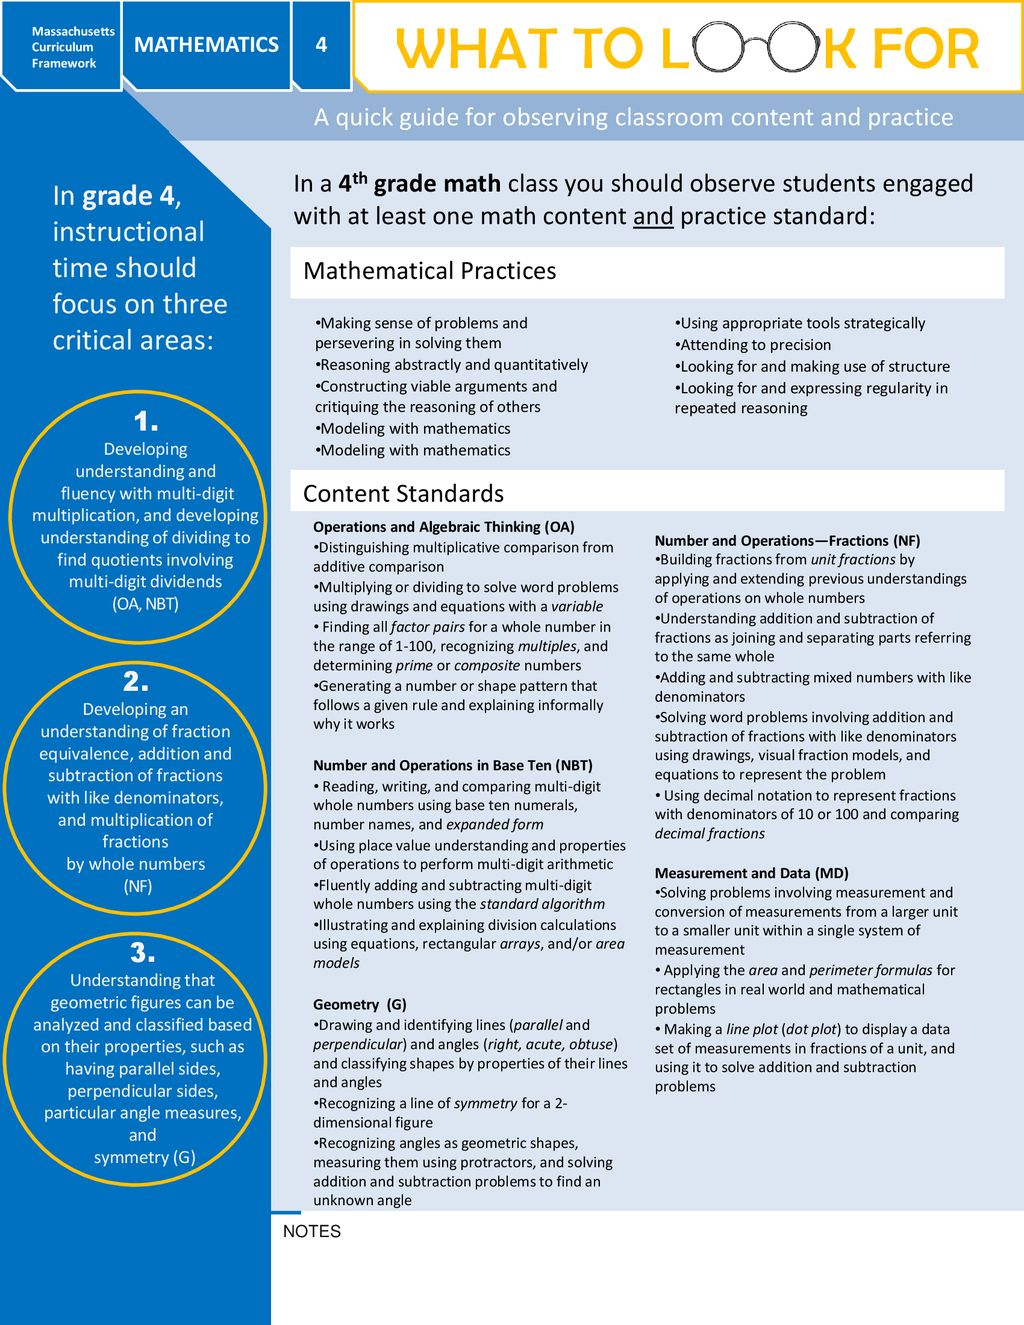 What to Look for Mathematics Grade 4 - ppt download